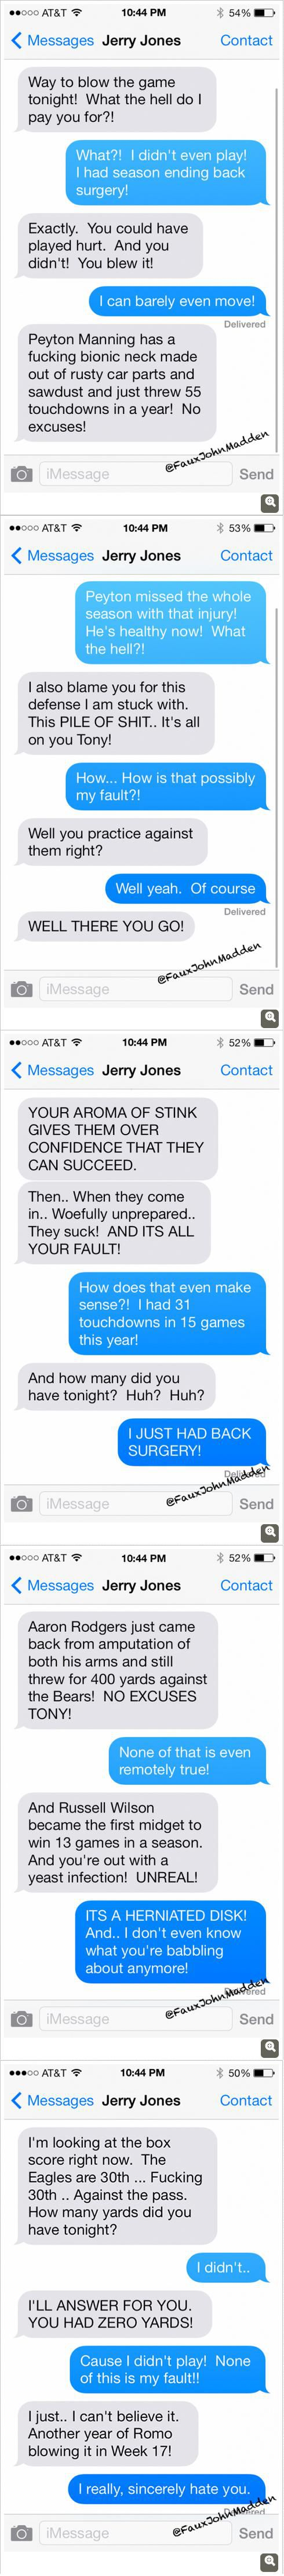 romo jerry jones text convo